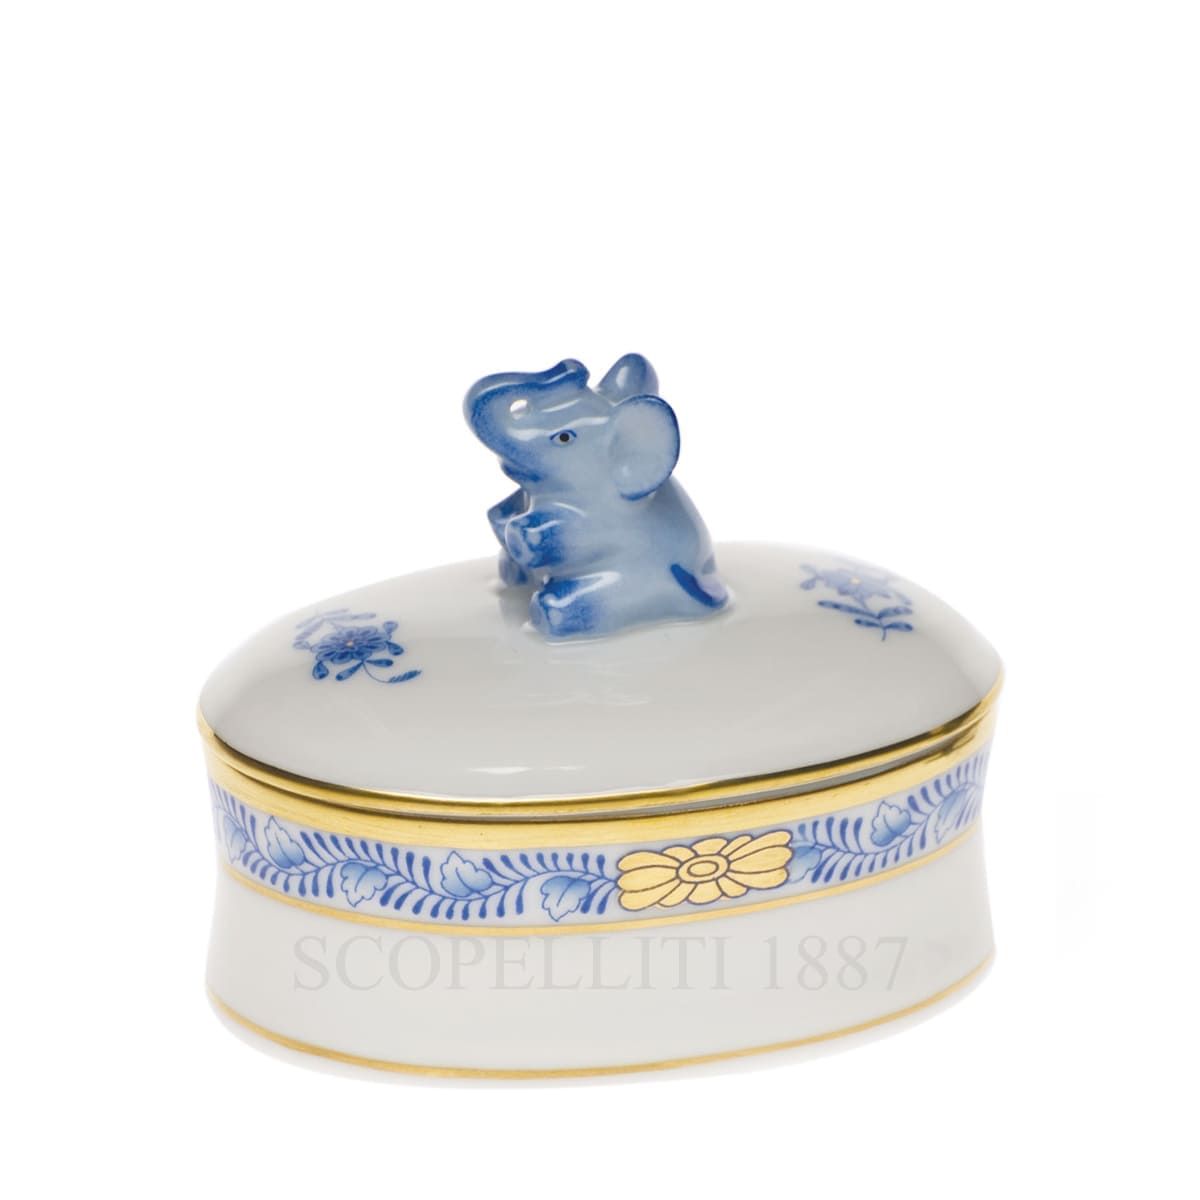 Herend Apponyi Oval Box with Elephant 6114-95 AB